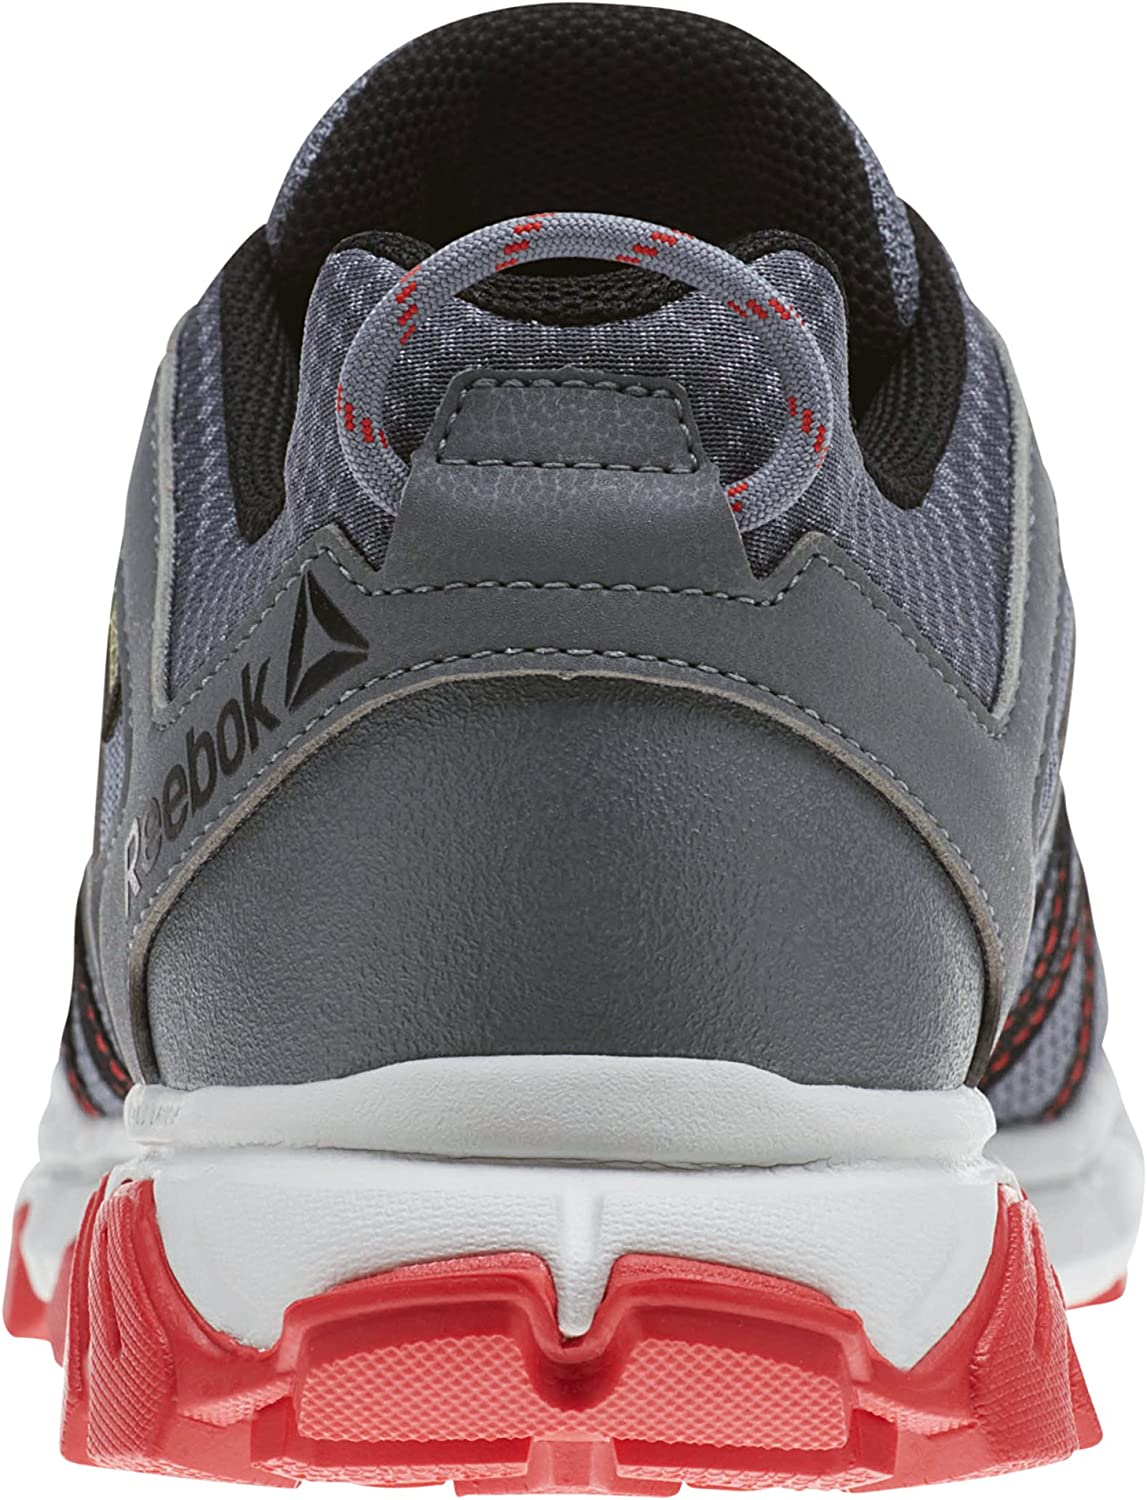 Suave melodía Disparates  Amazon.com | Reebok Trailgrip RS 5.0 Gore-TEX Trail Running Shoes - SS18-14  - Grey | Trail Running